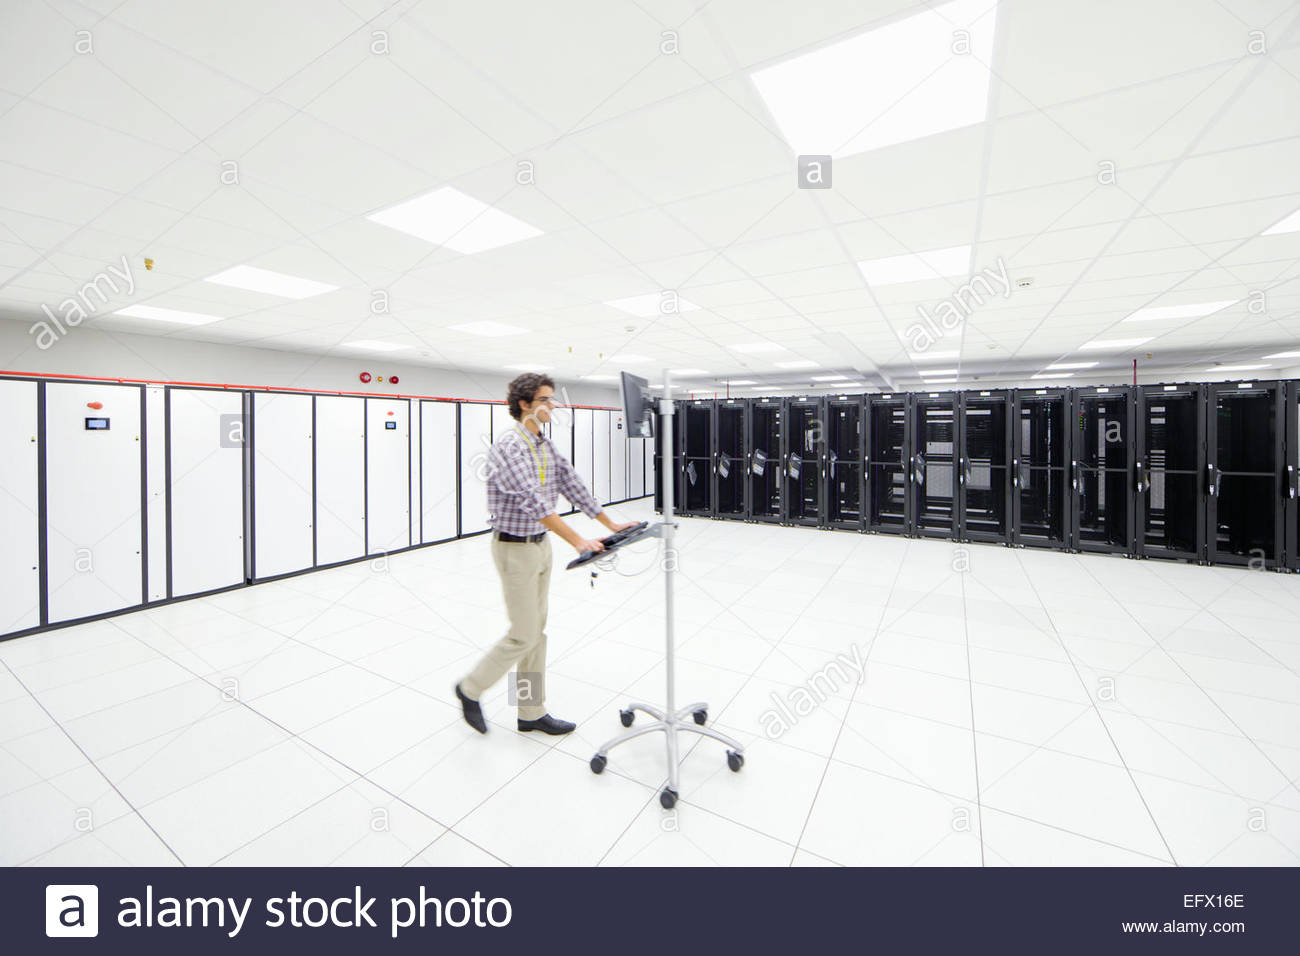 Technician walking through server room with portable computer - Stock Image